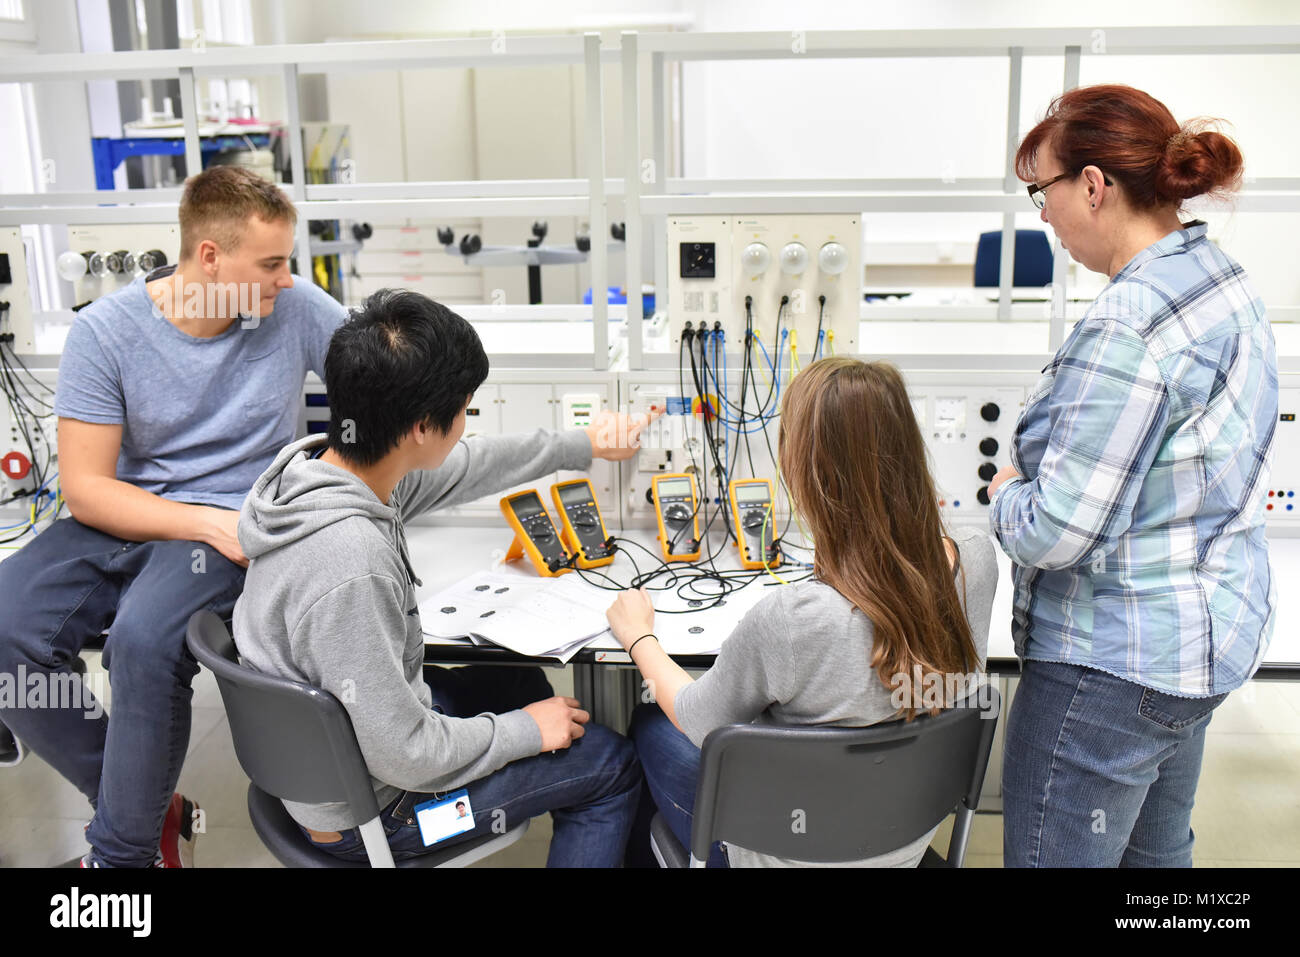 technical vocational training in industry: young apprentices and trainers in the classroom - Stock Image